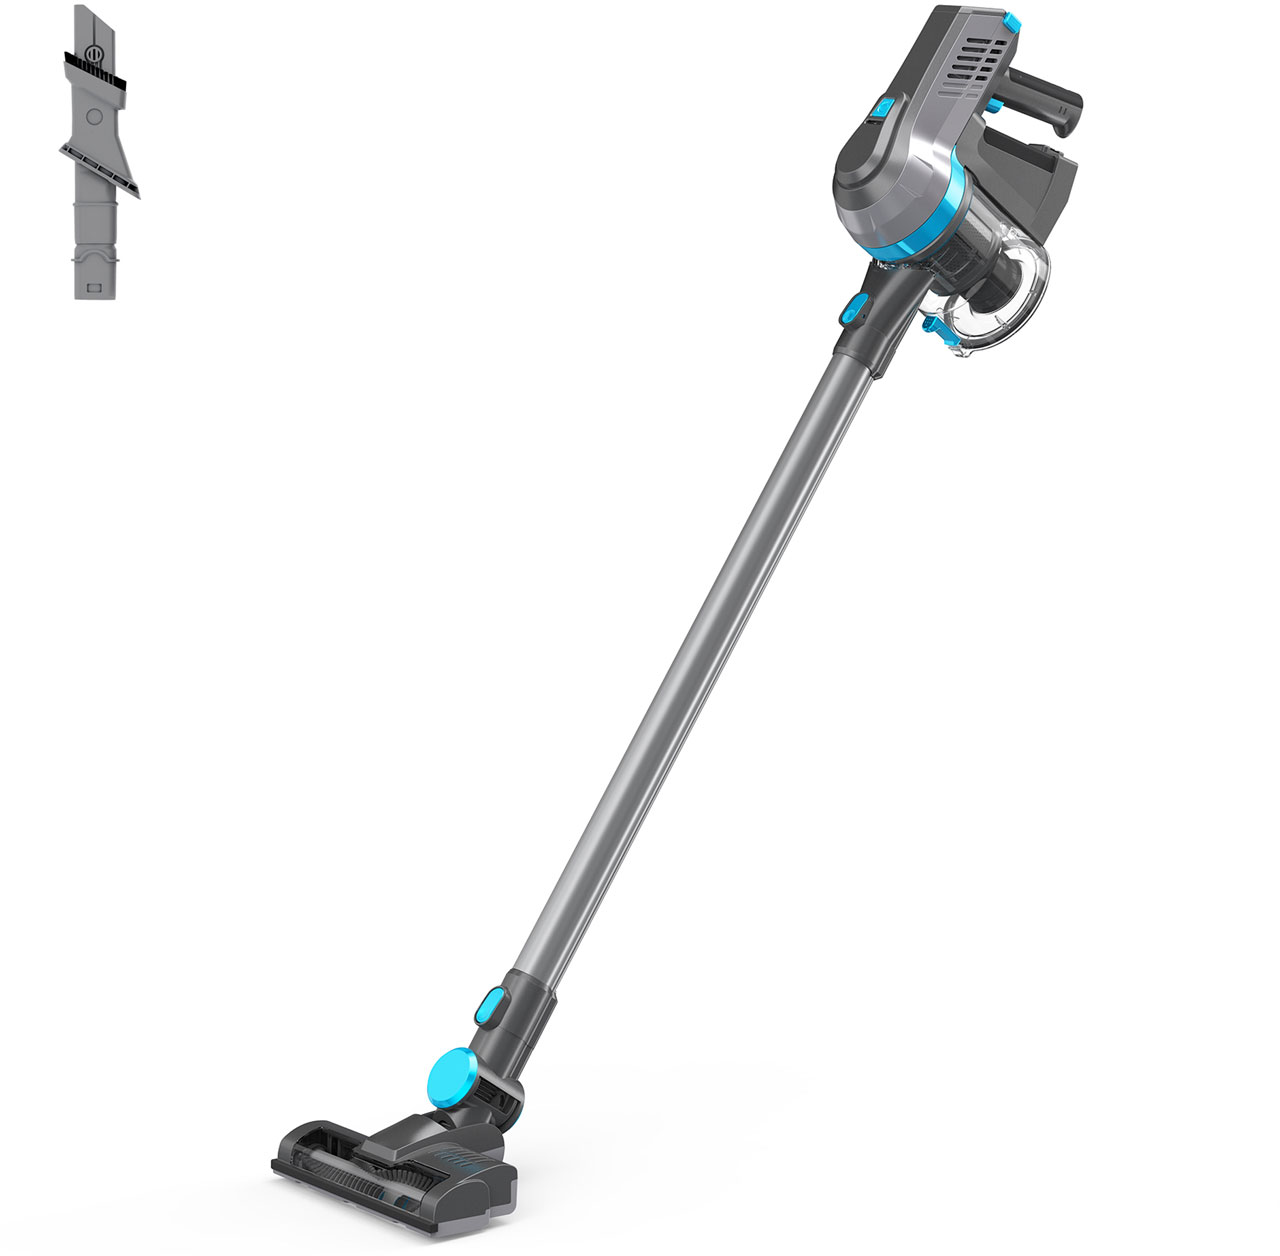 Image result for Vax Cordless SlimVac Vacuum Cleaner (TBTTV1B1)